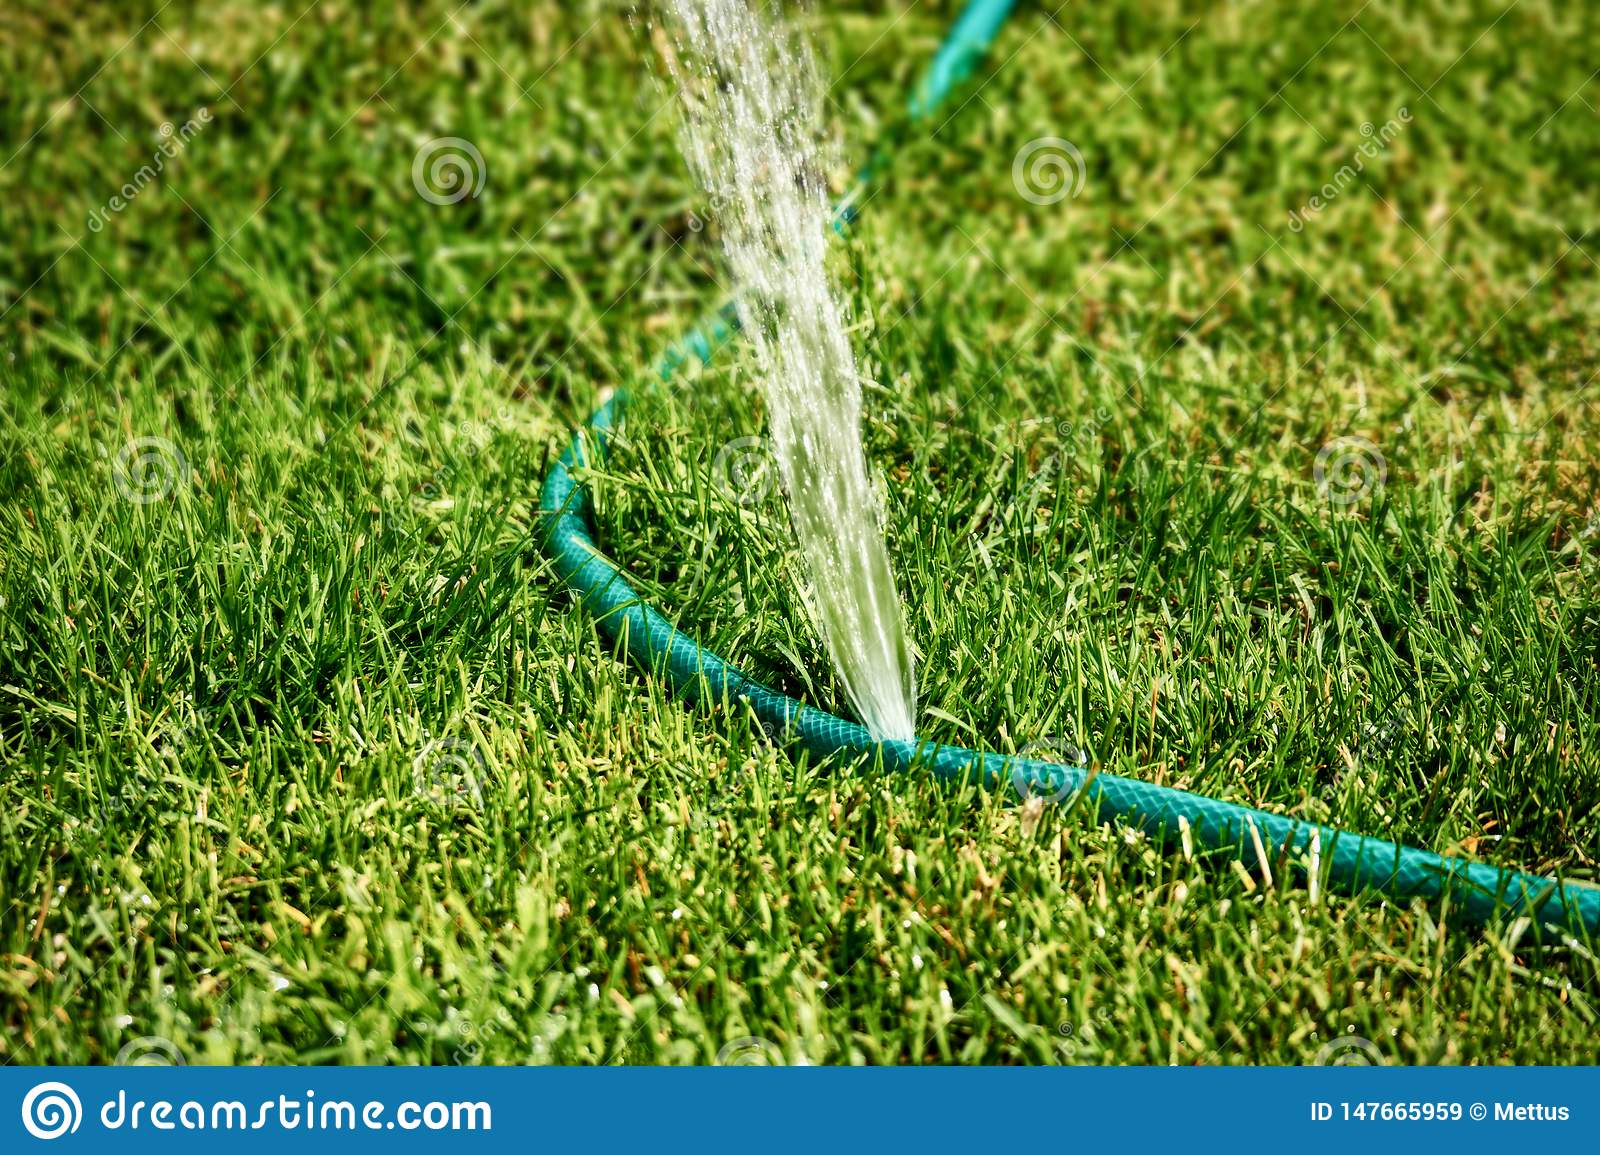 Diy Lawn Sprinkler Working In Grass Spreading Water All Over